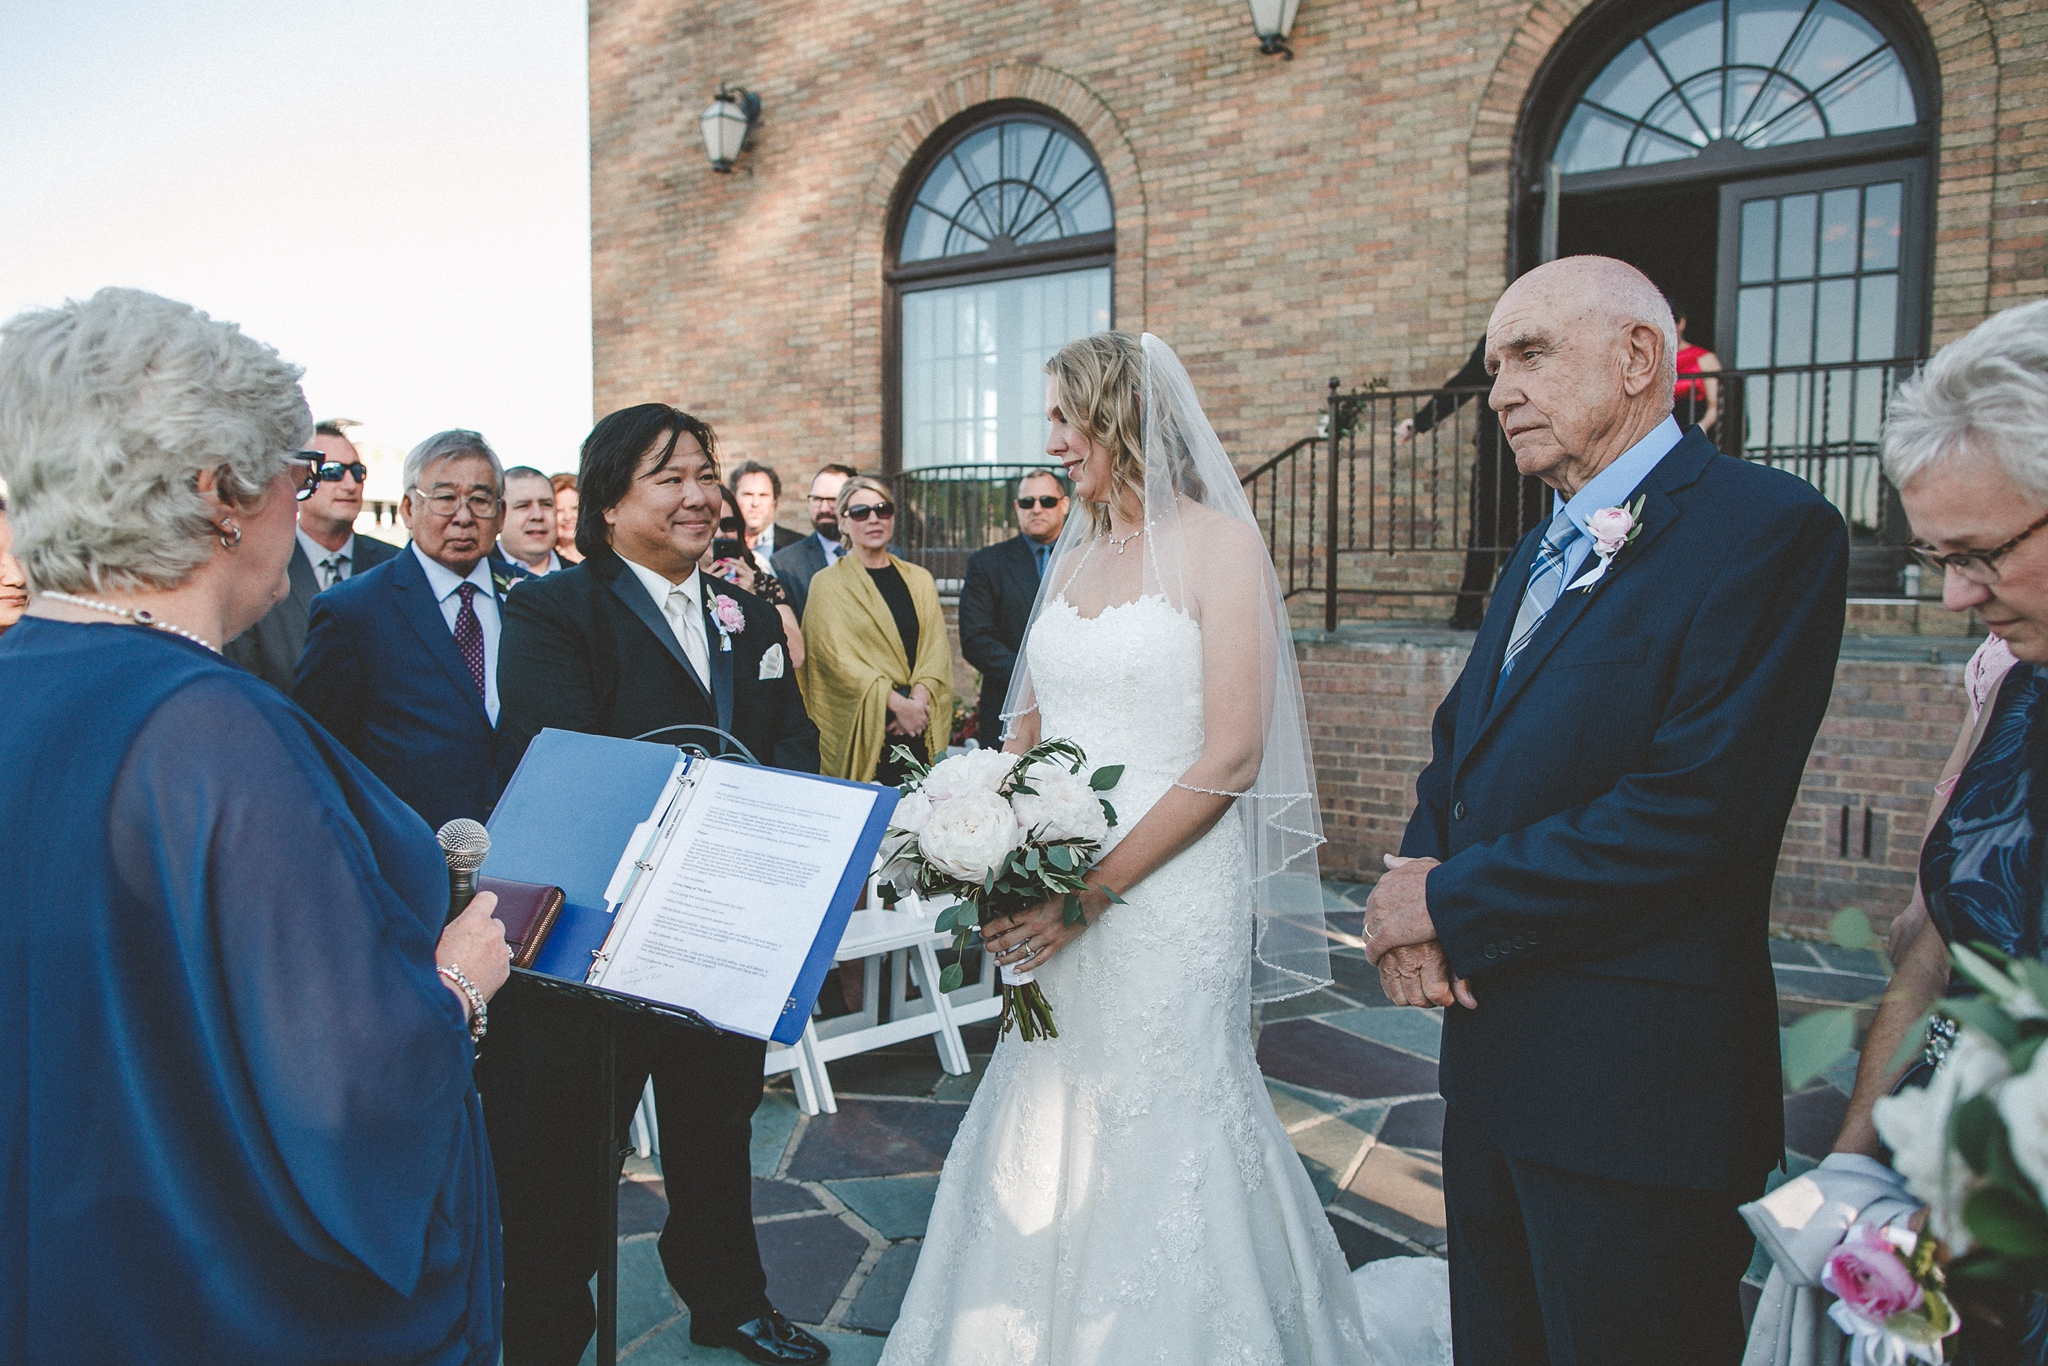 hotel_baker_st_charles_IL_wedding_photographer_0042.jpg